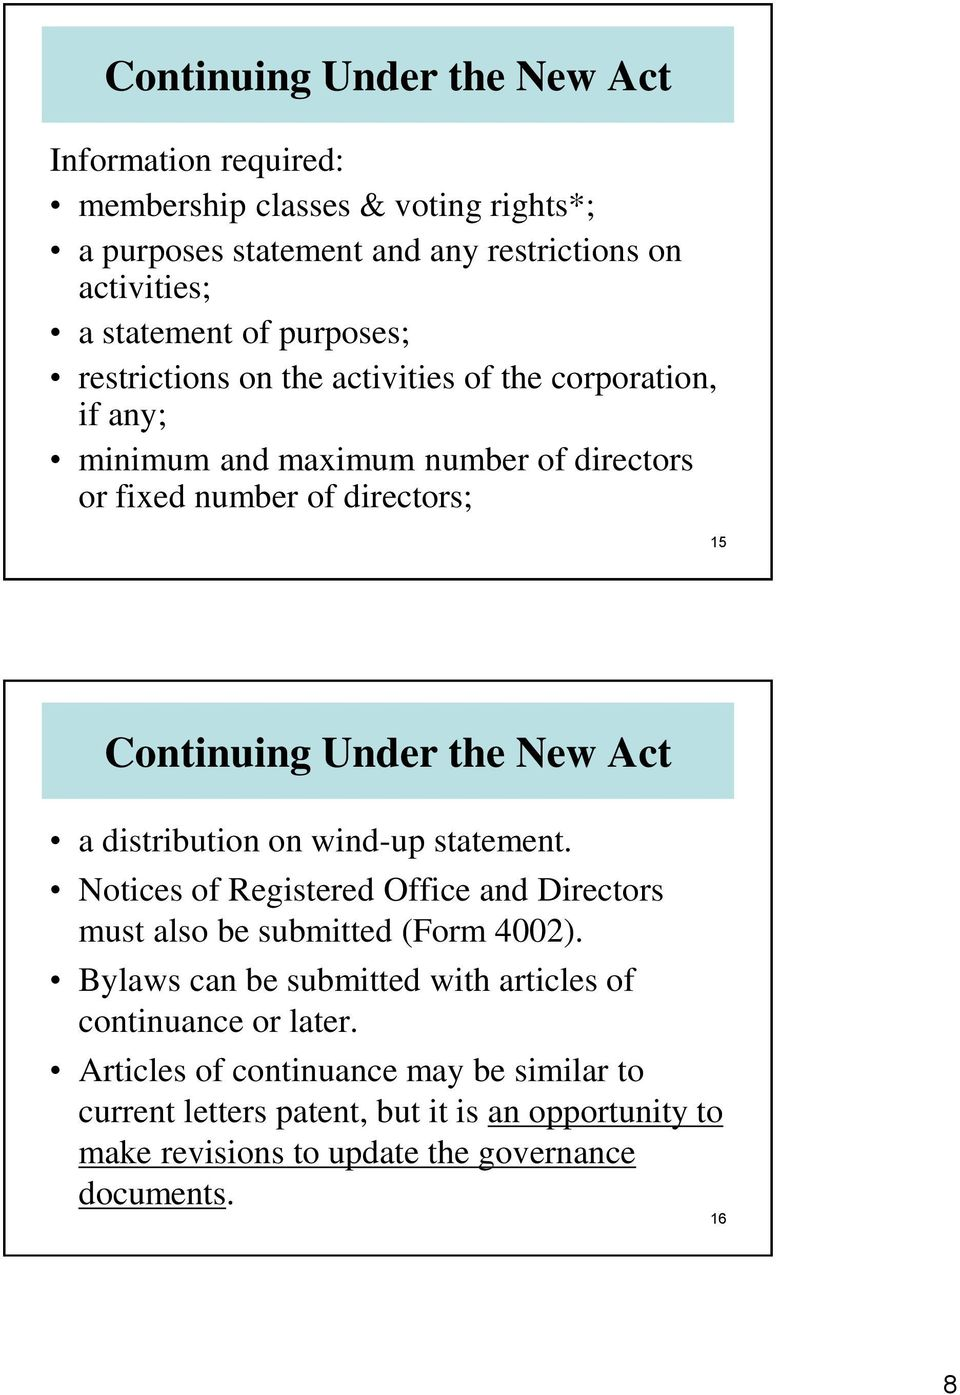 New Act a distribution on wind-up statement. Notices of Registered Office and Directors must also be submitted (Form 4002).